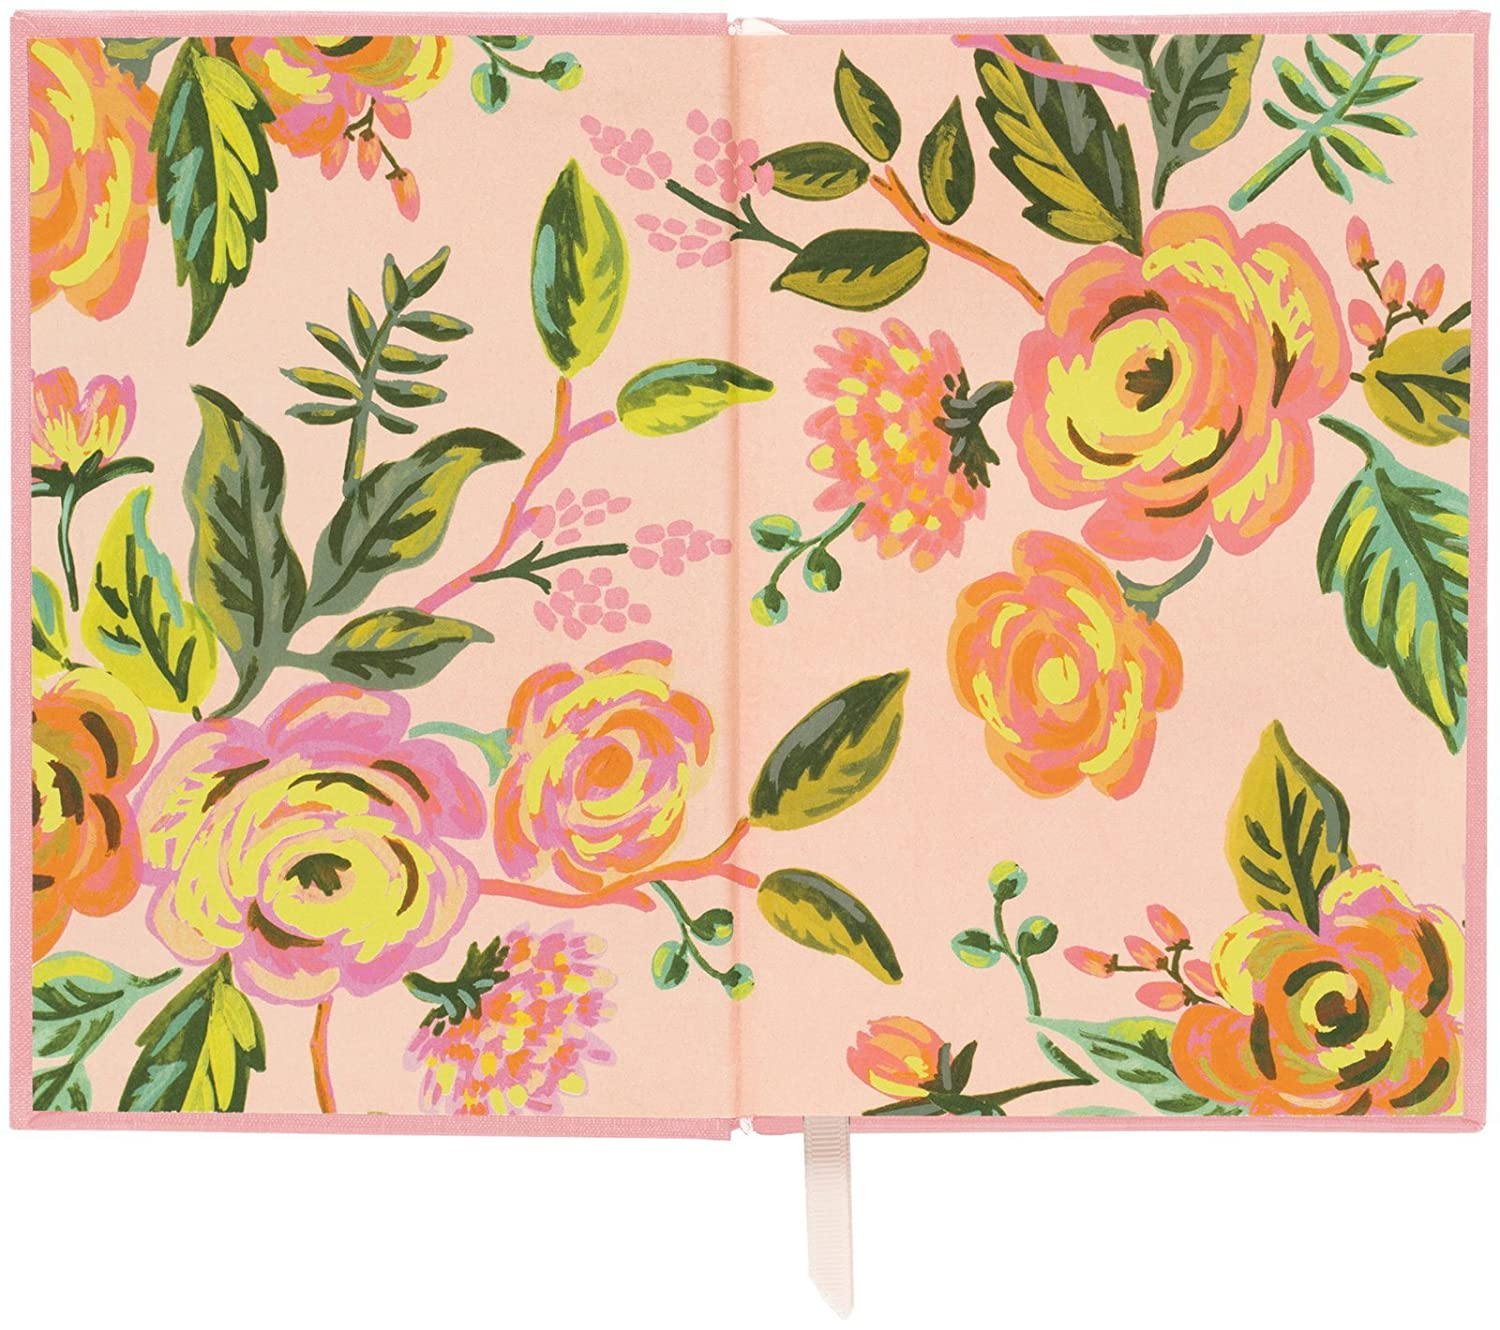 Rifle papel 2017 12 Mes Blush tapa dura planificador: Amazon ...